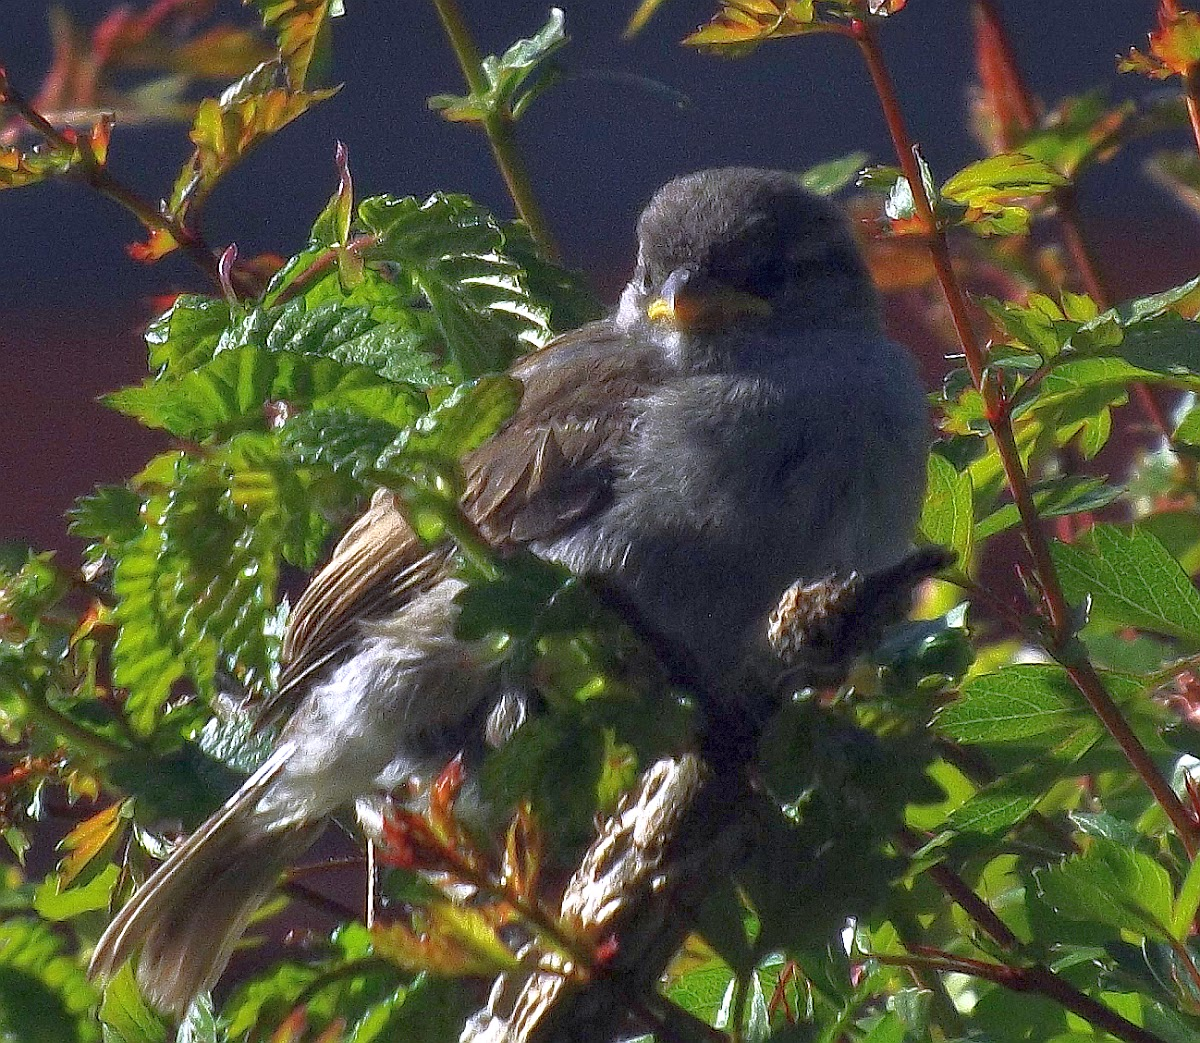 Sparrow chick/fledgling